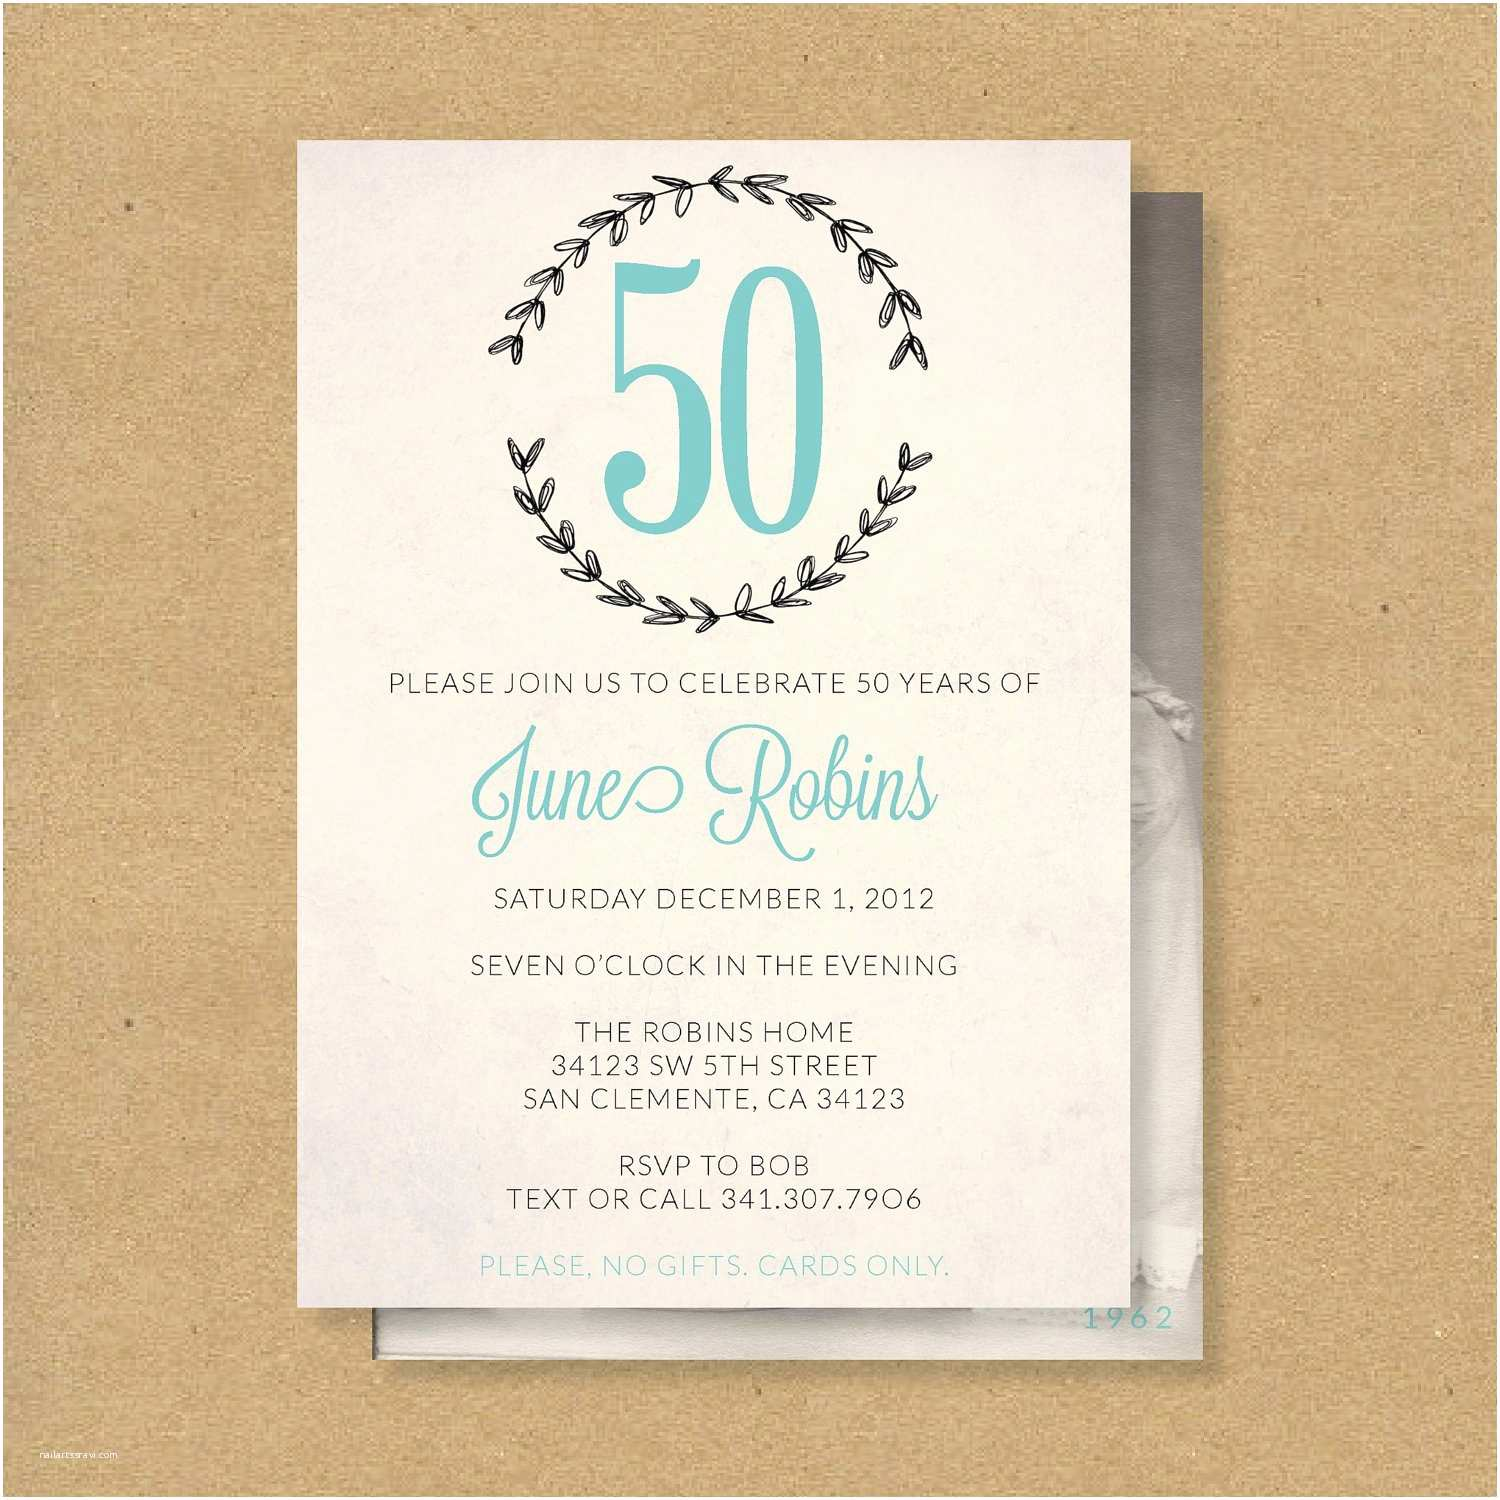 Online Party Invitations Adult Birthday Invitation 30th Birthday Invitations